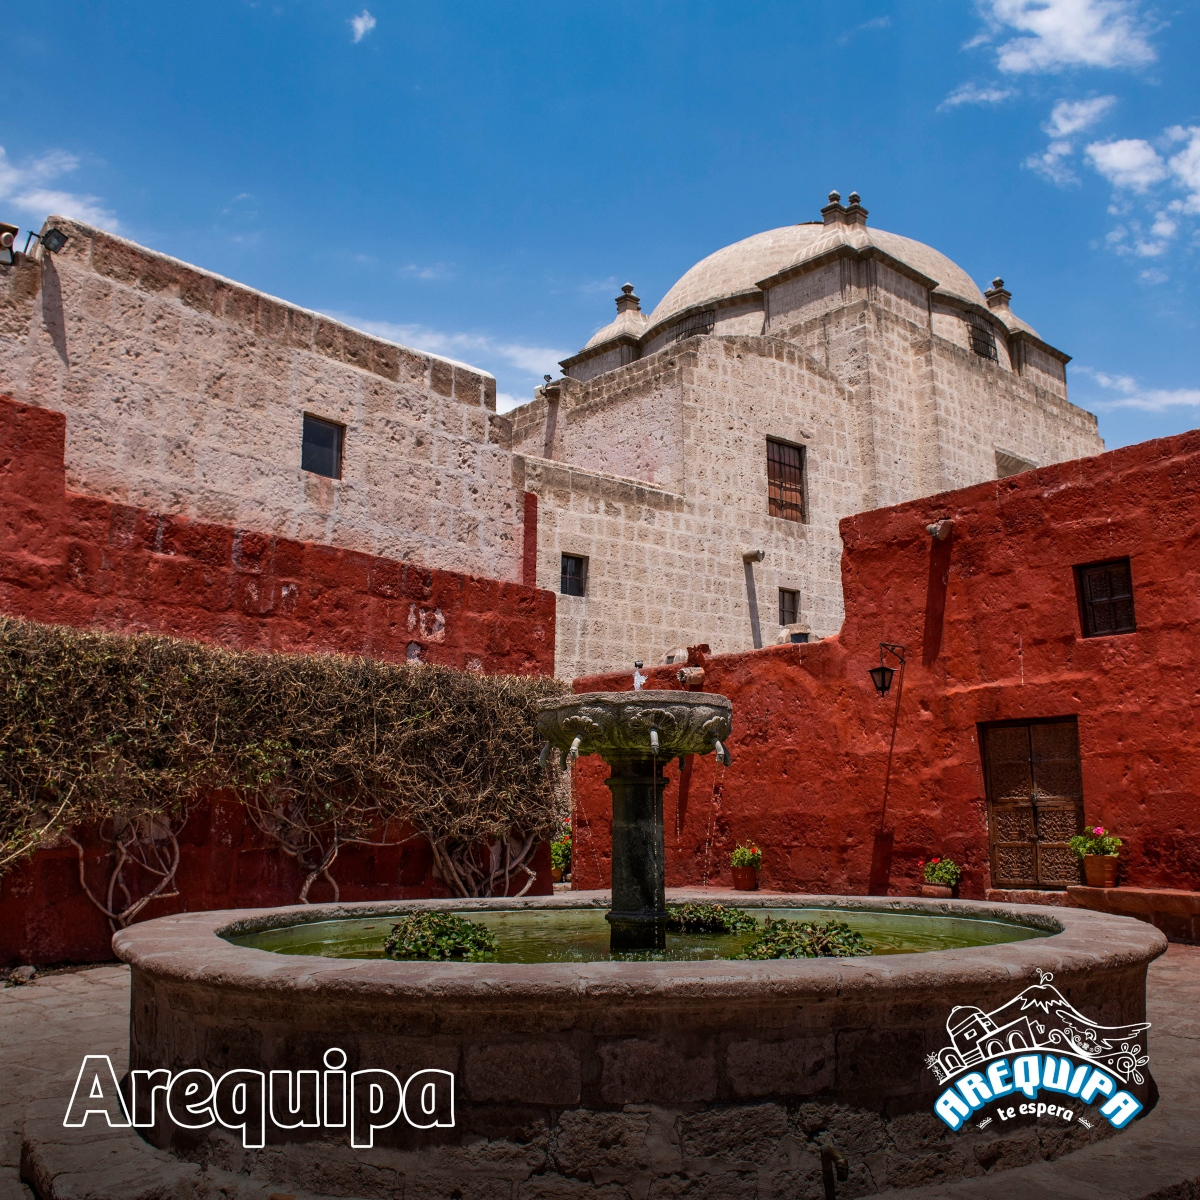 arequipay